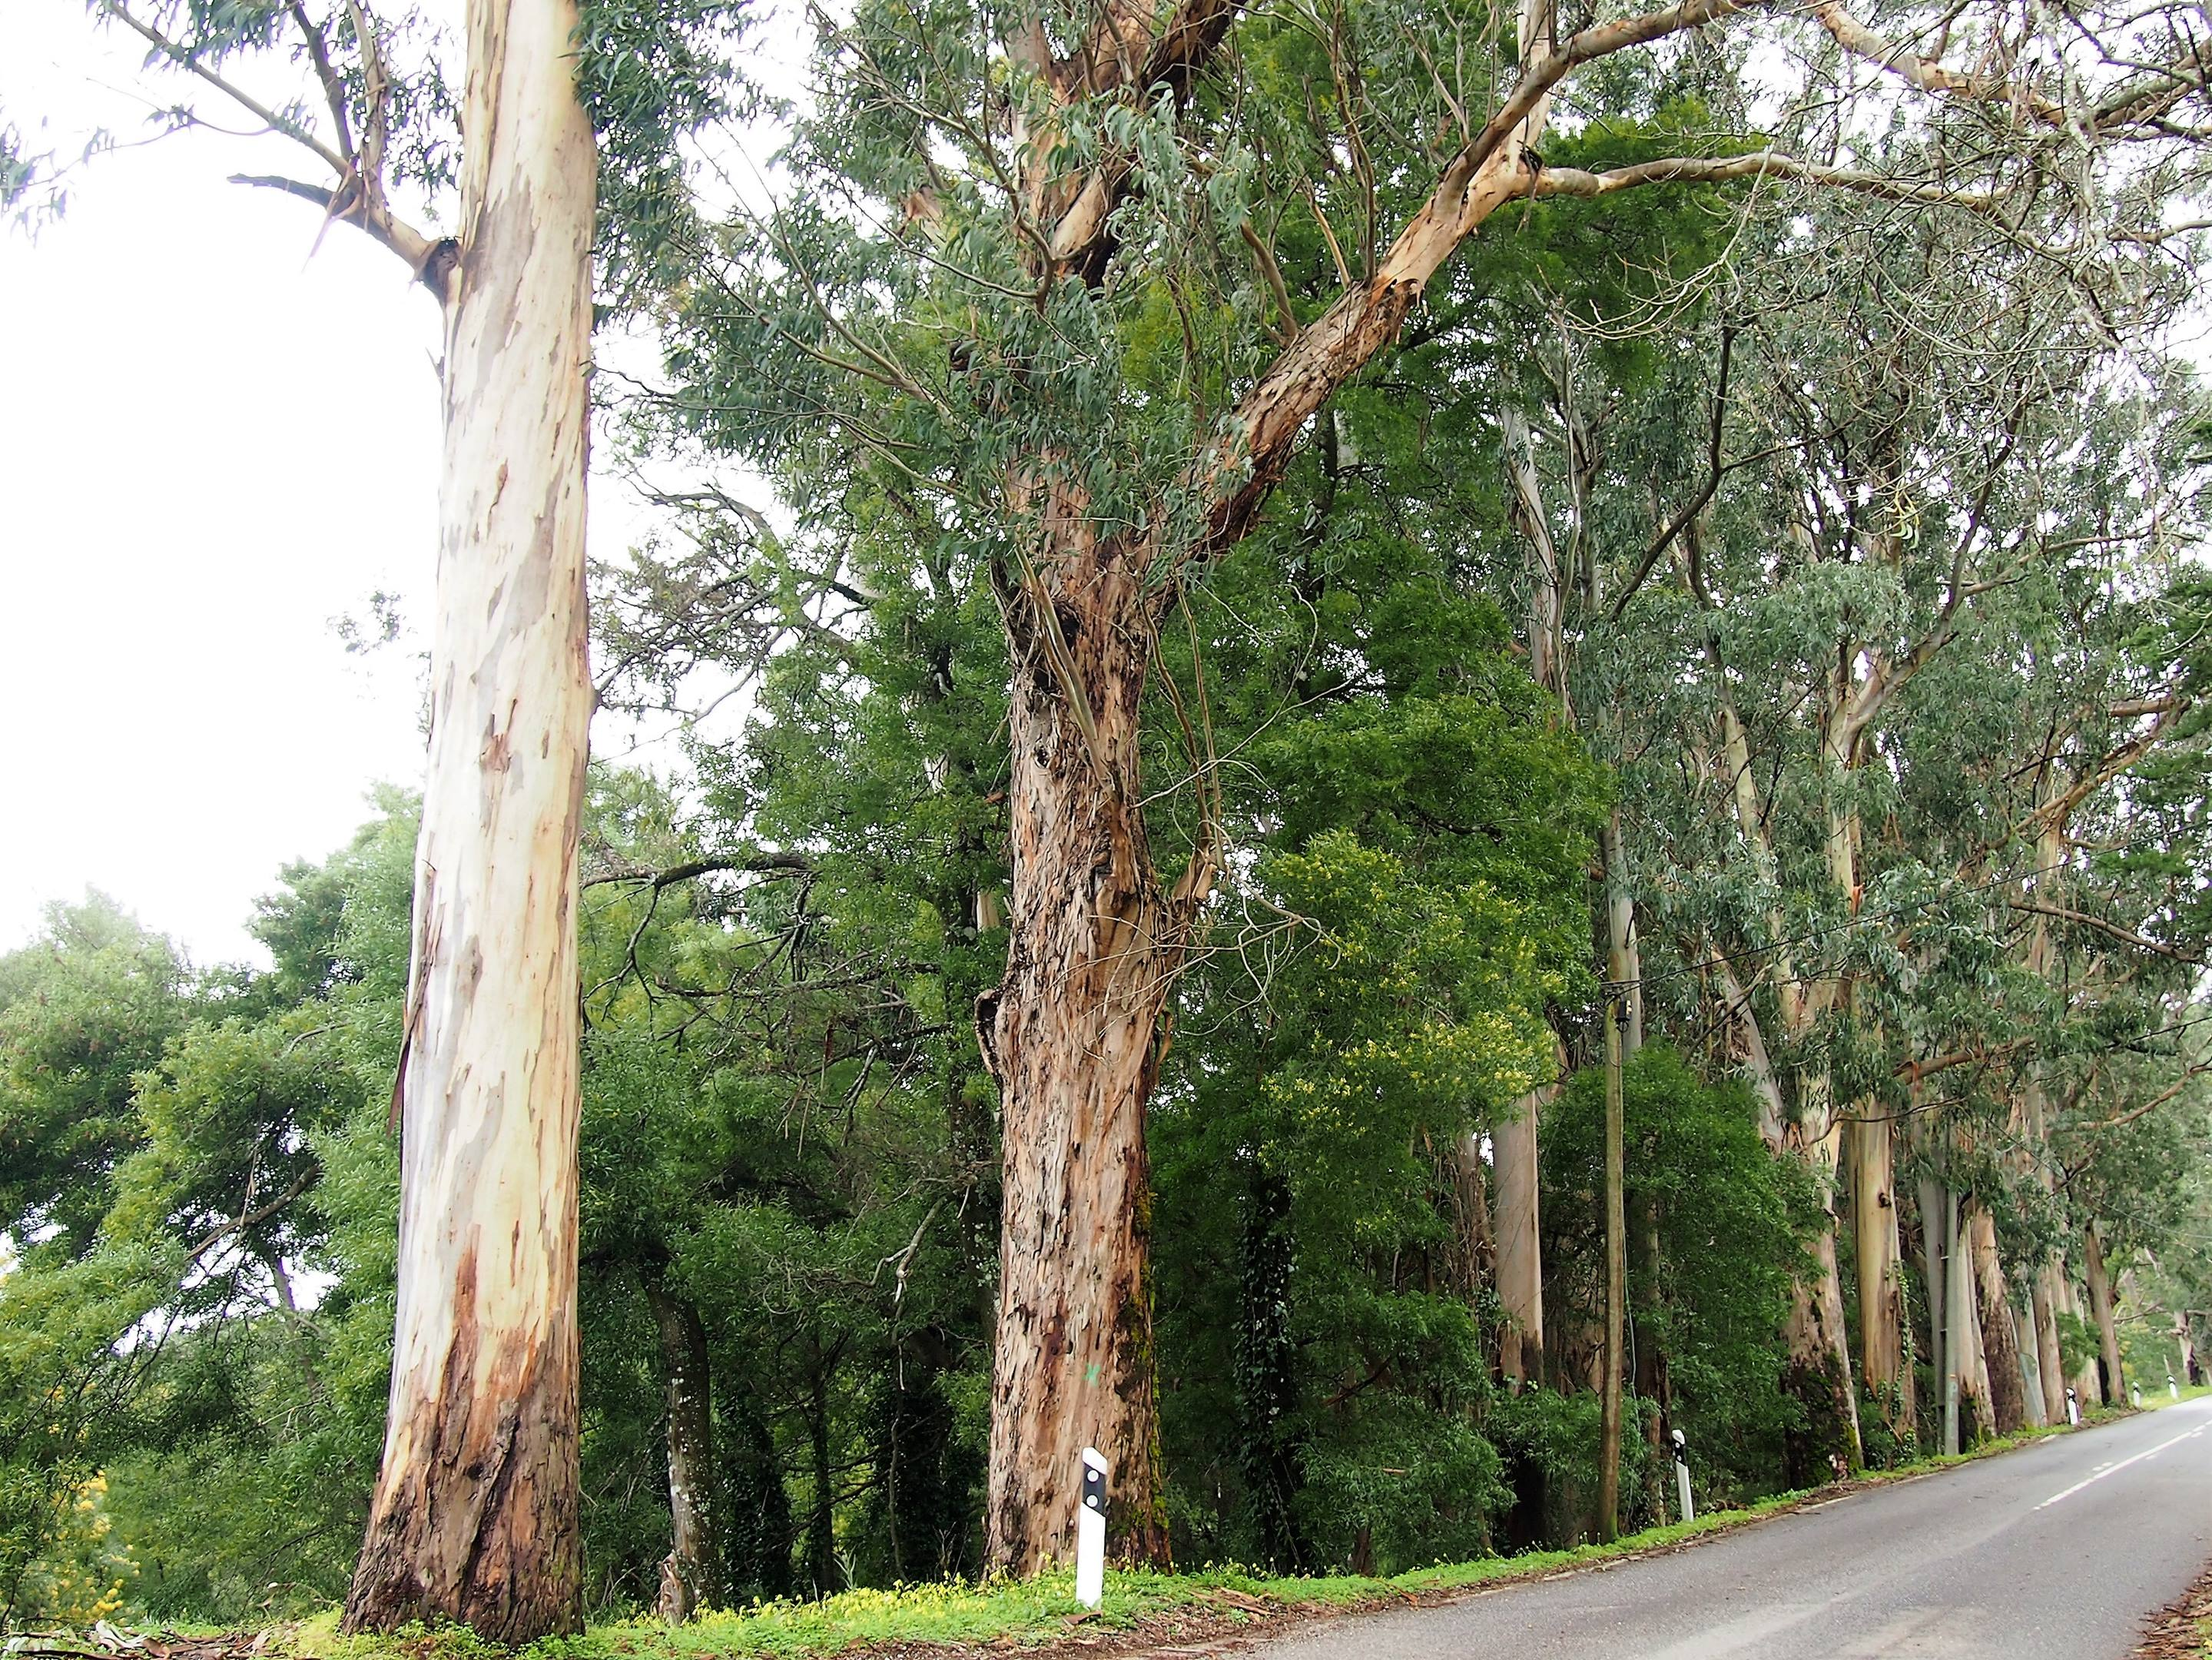 Eucalyptus trees are everywhere - on the road from Monchique to Fóia.